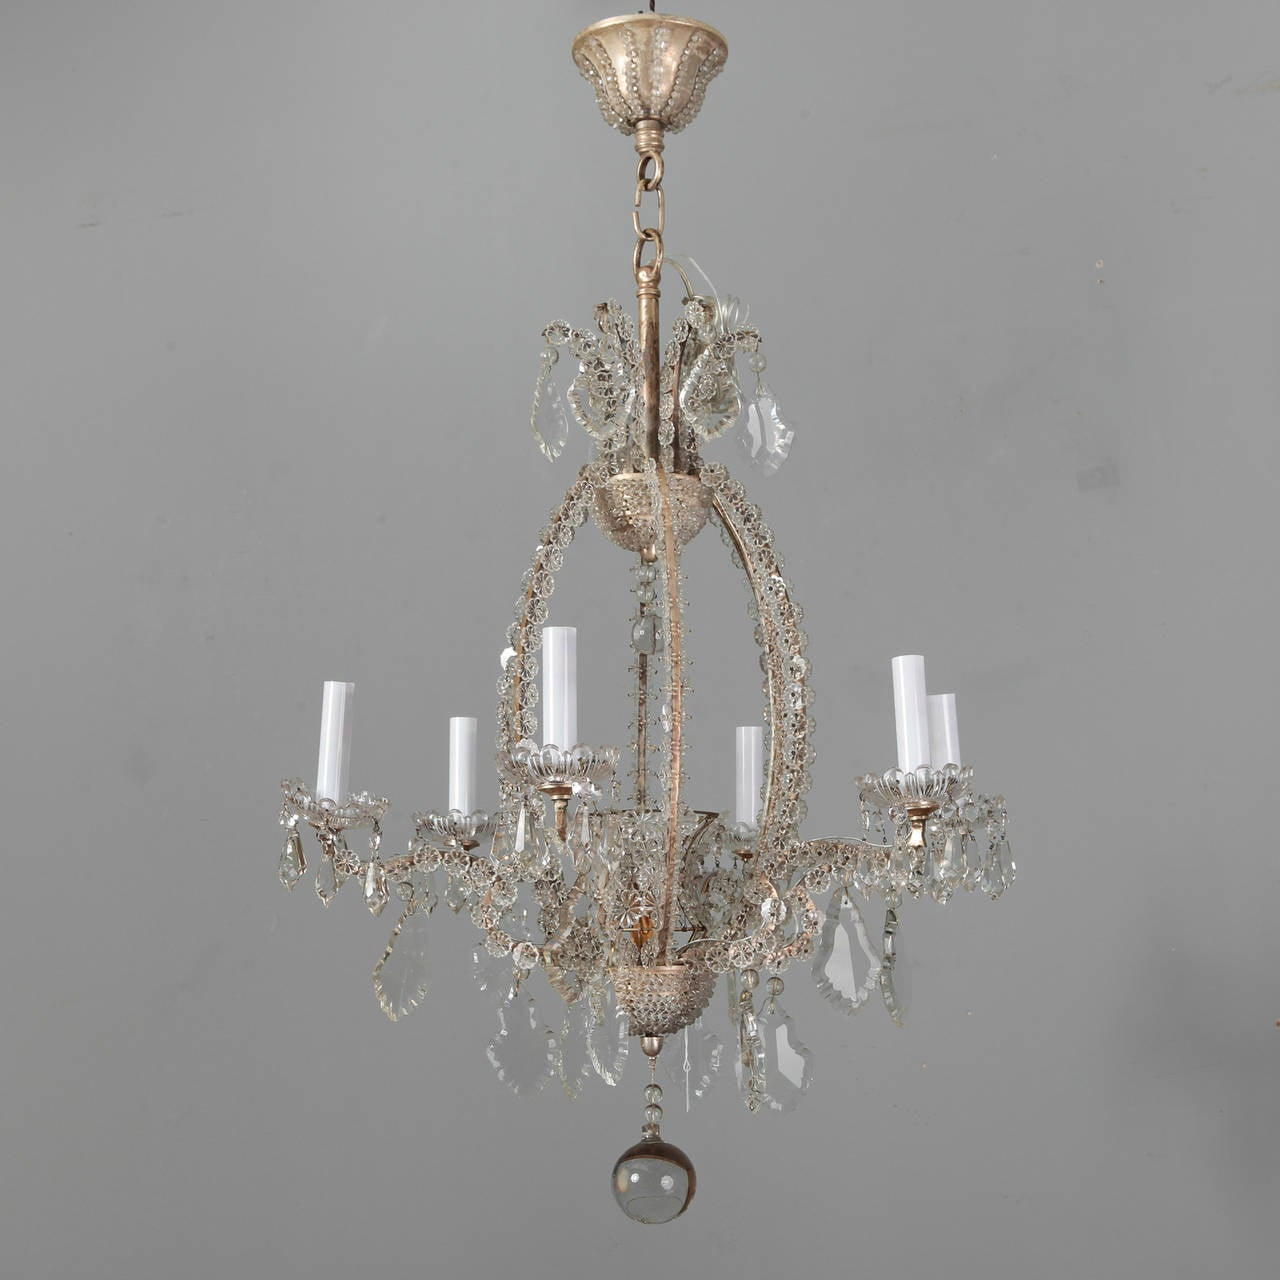 Pair of circa 1900, Italian six-light chandeliers with frames covered in clear, flower-shaped crystal beads, cut crystal bobeches, candle style lights, large crystal prisms and center drops. Original metal ceiling canopies with beaded details. New